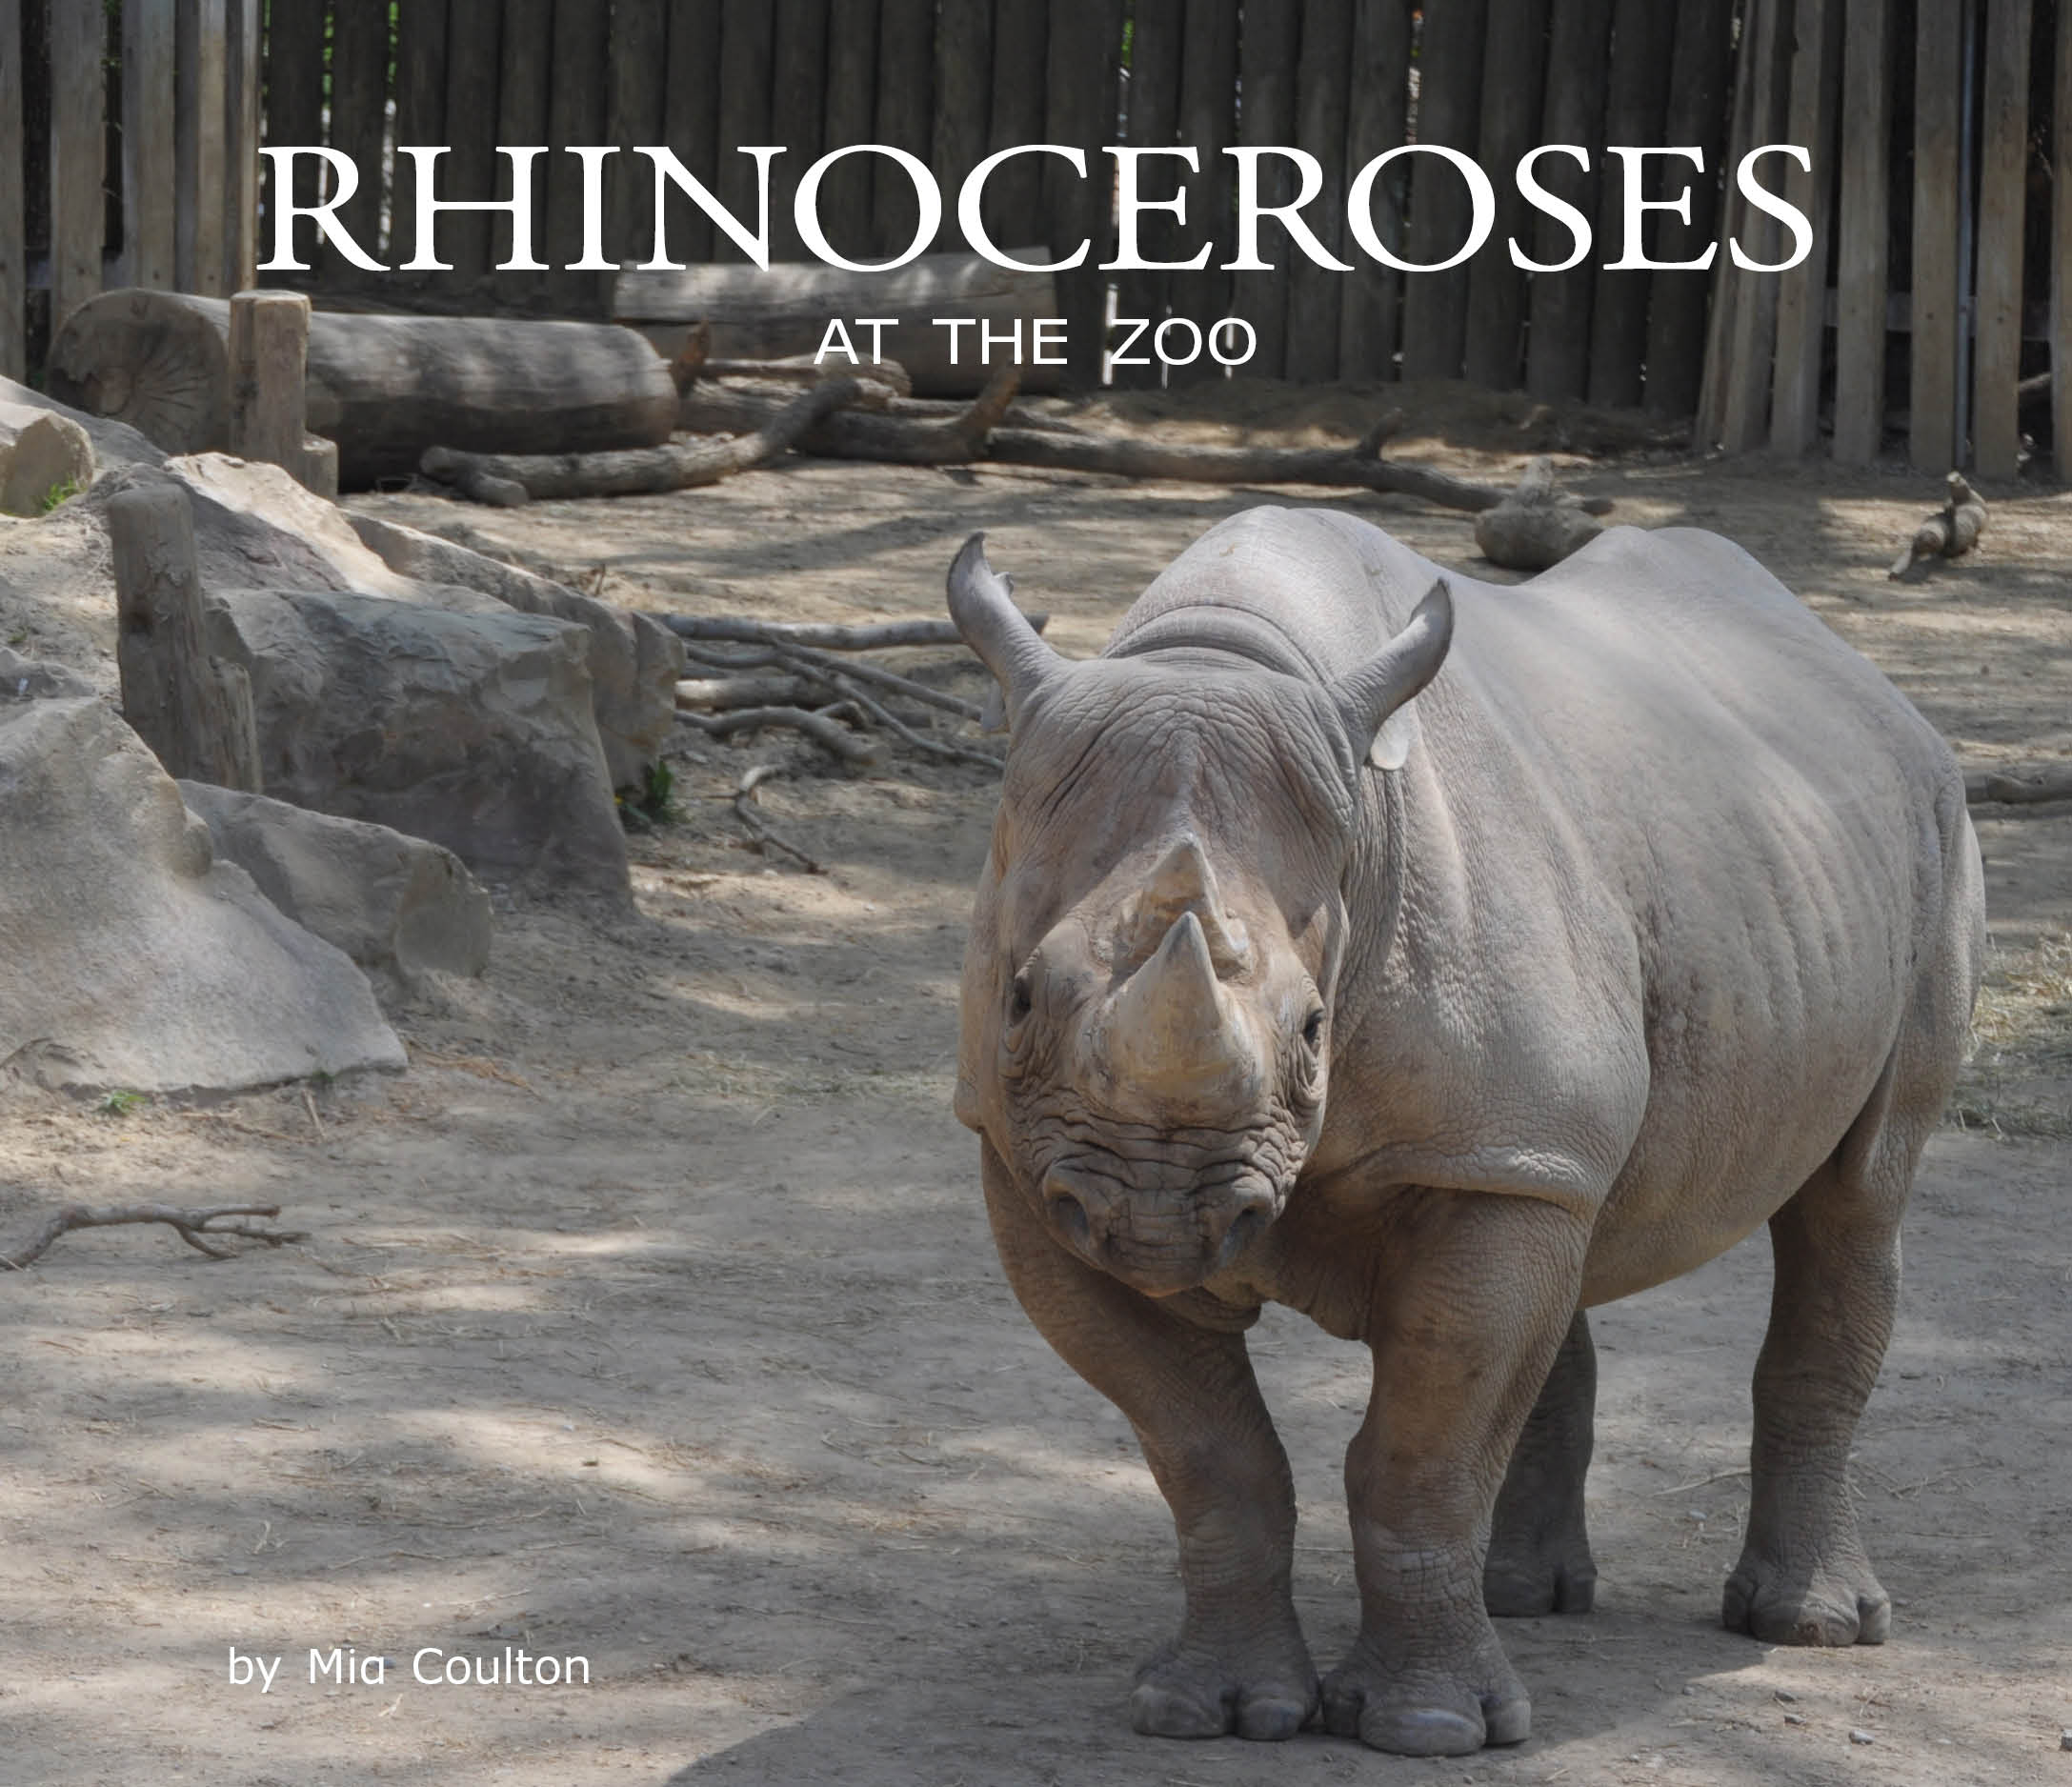 In Rhinoceroses At The Zoo Read More About Rhinoceroses